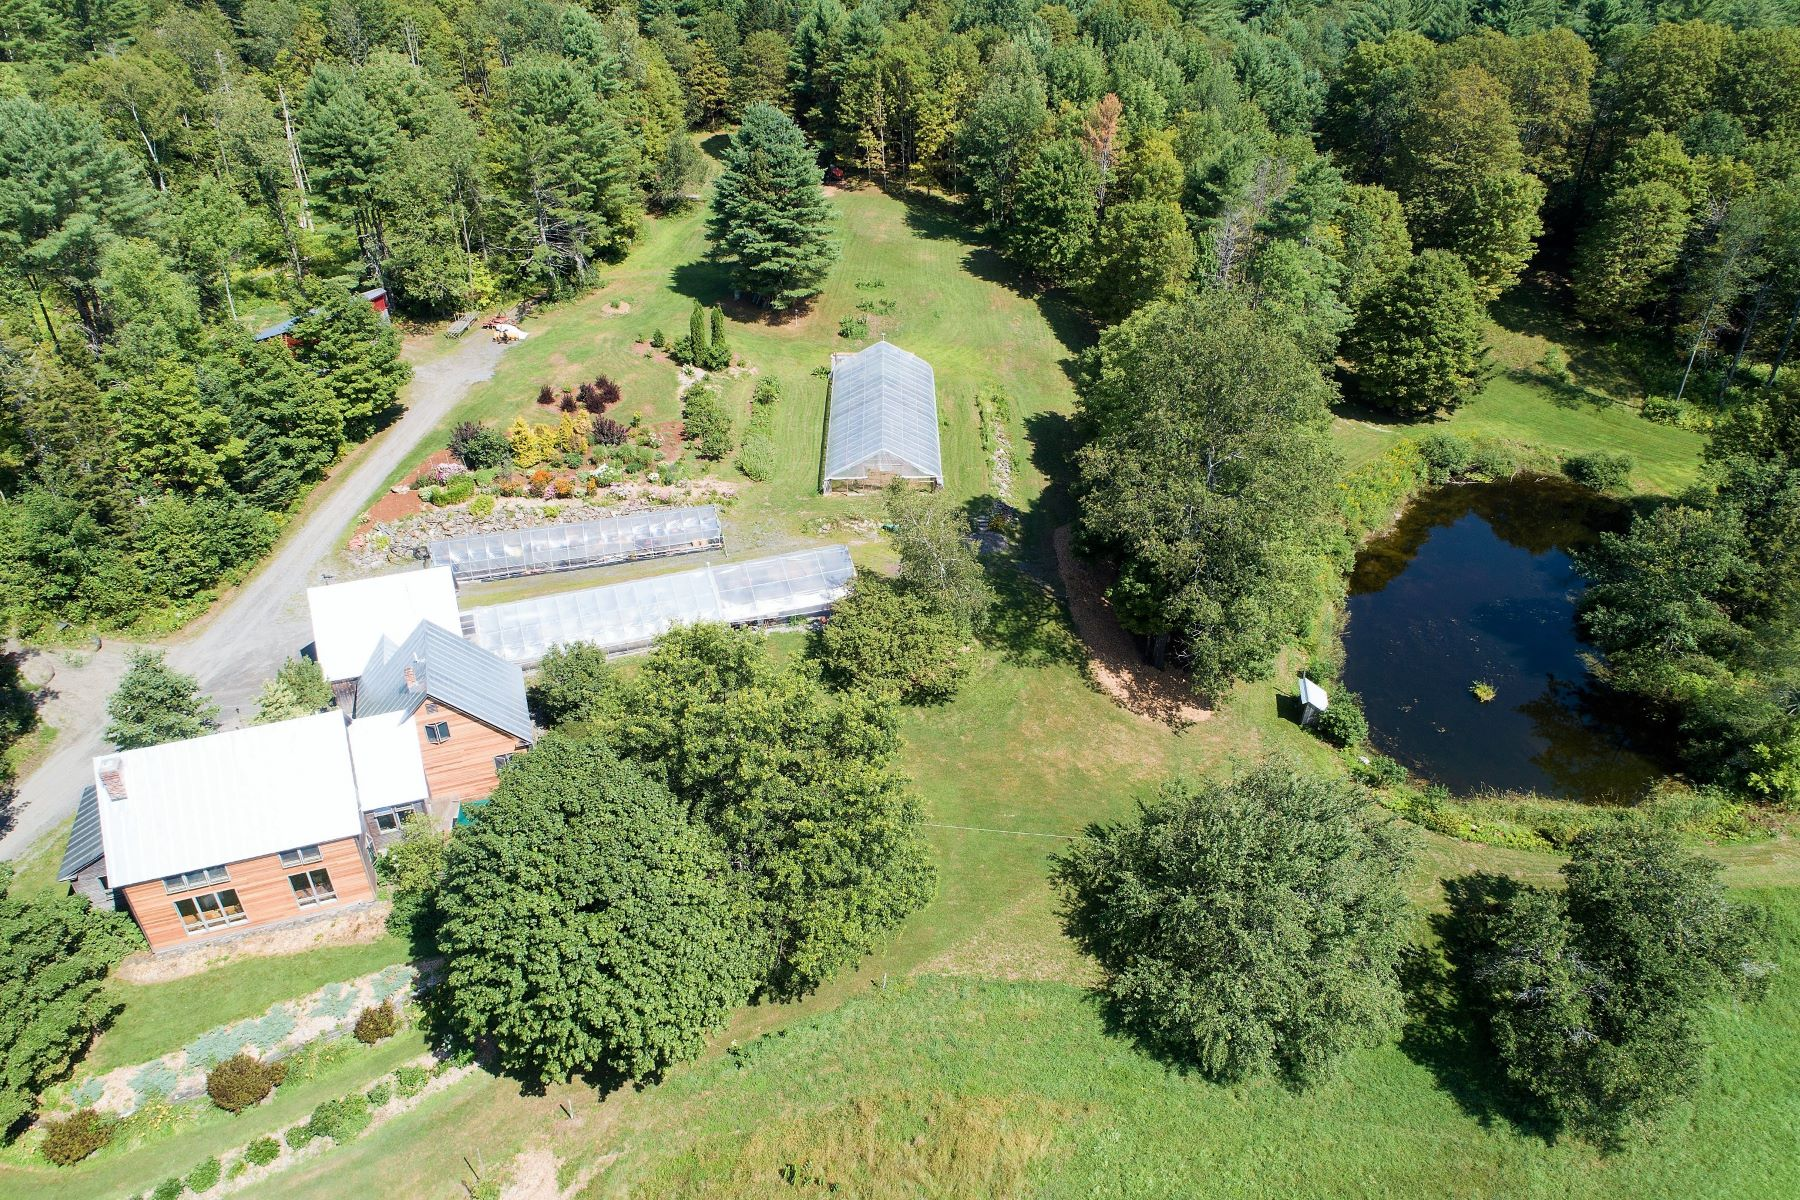 Single Family Homes for Sale at Contemporay on 160 Acres in Brookfield 501 Kibbee Rd Brookfield, Vermont 05036 United States